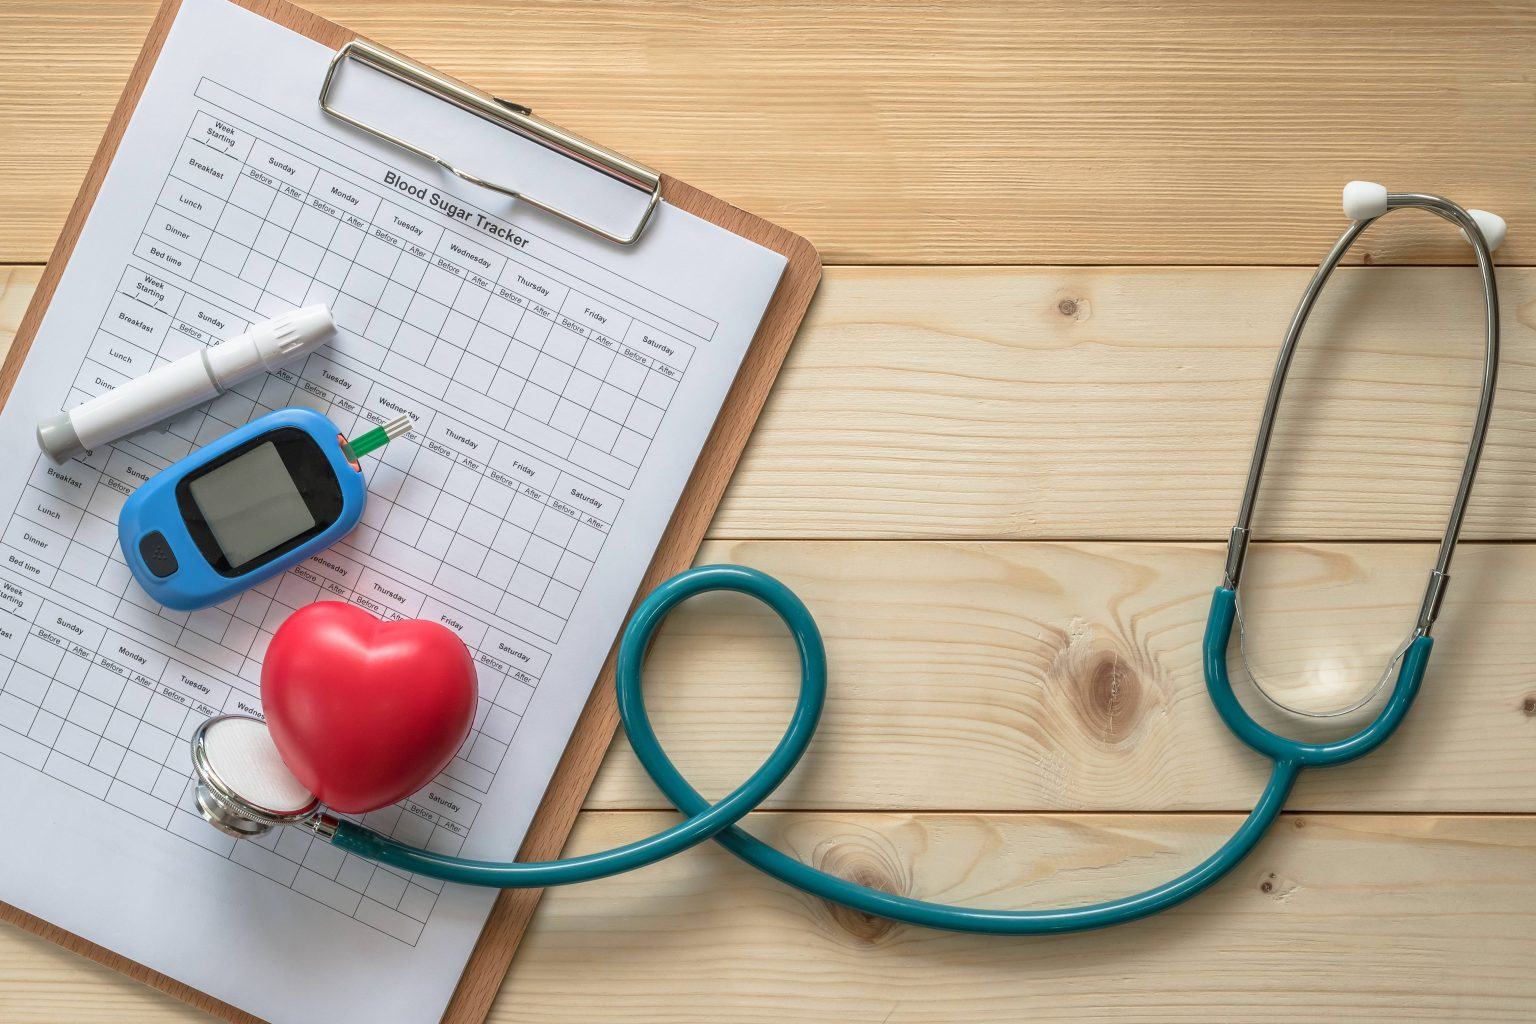 blood sugar tracker form on a clipboard, insulin injector pen, handheld digital gadget for reading blood sugar, foam heart and stethoscope artistically arranged